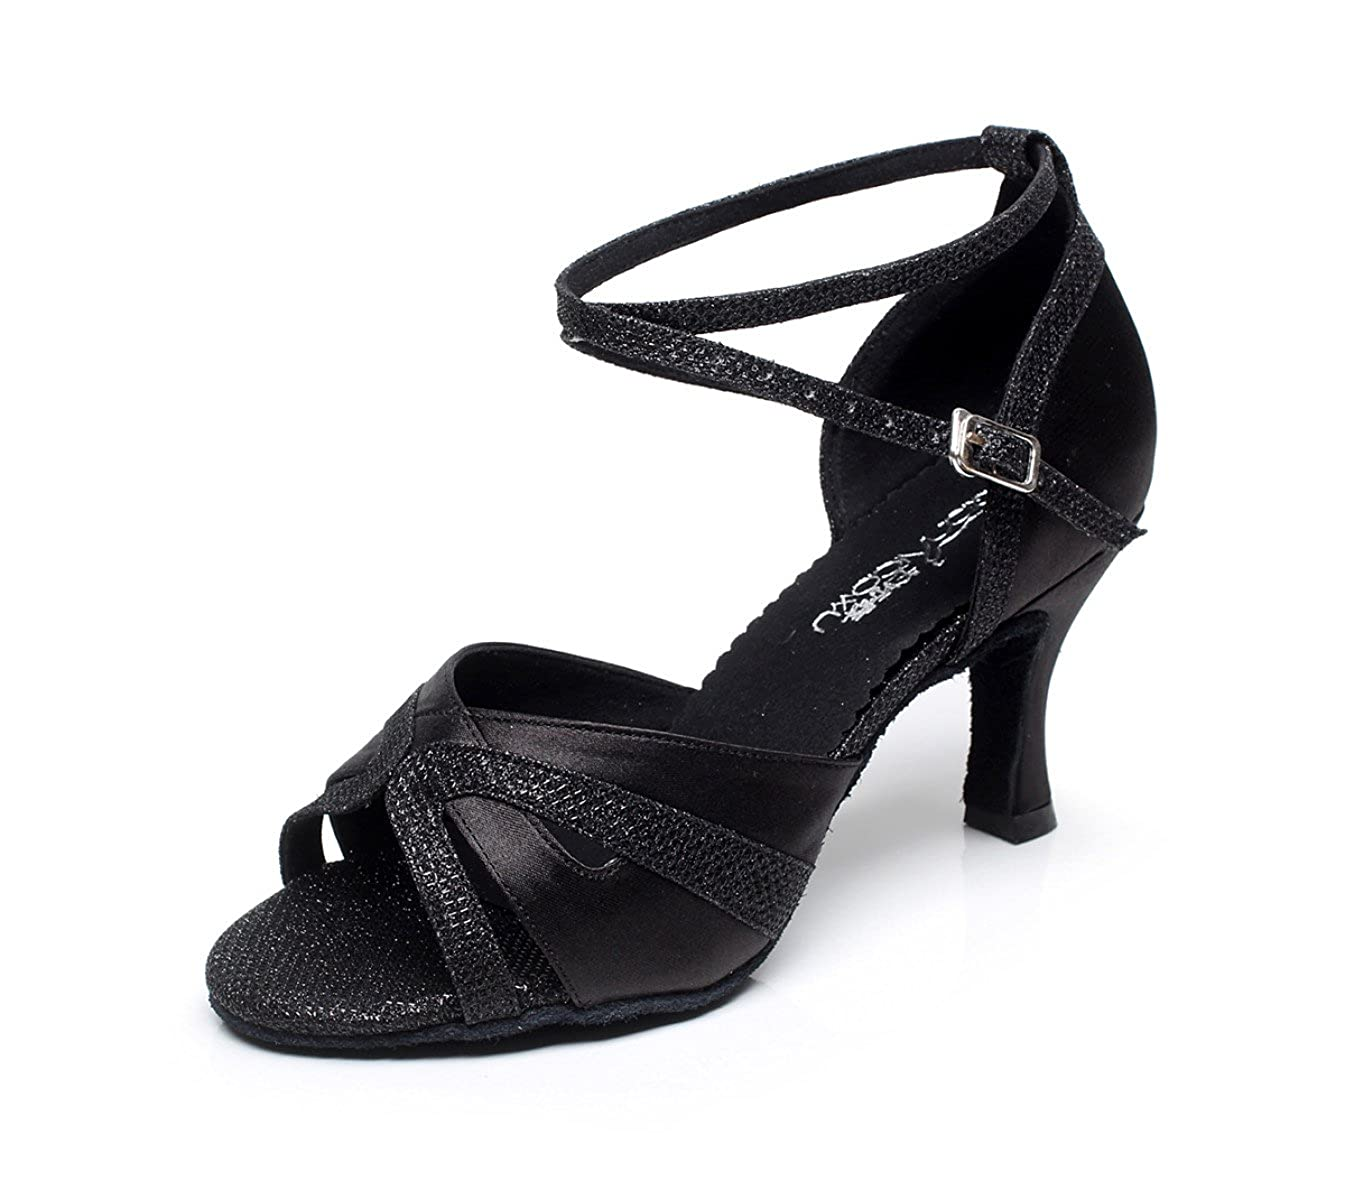 JSHOE Sexy Tango Salsa Jazz Party Dance Chaussures Ballroom Latin - Tango Party Danse Chaussures Talons Hauts,Black-heeled7.5cm-UK7/EU41/Our42 - 9545f54 - fast-weightloss-diet.space